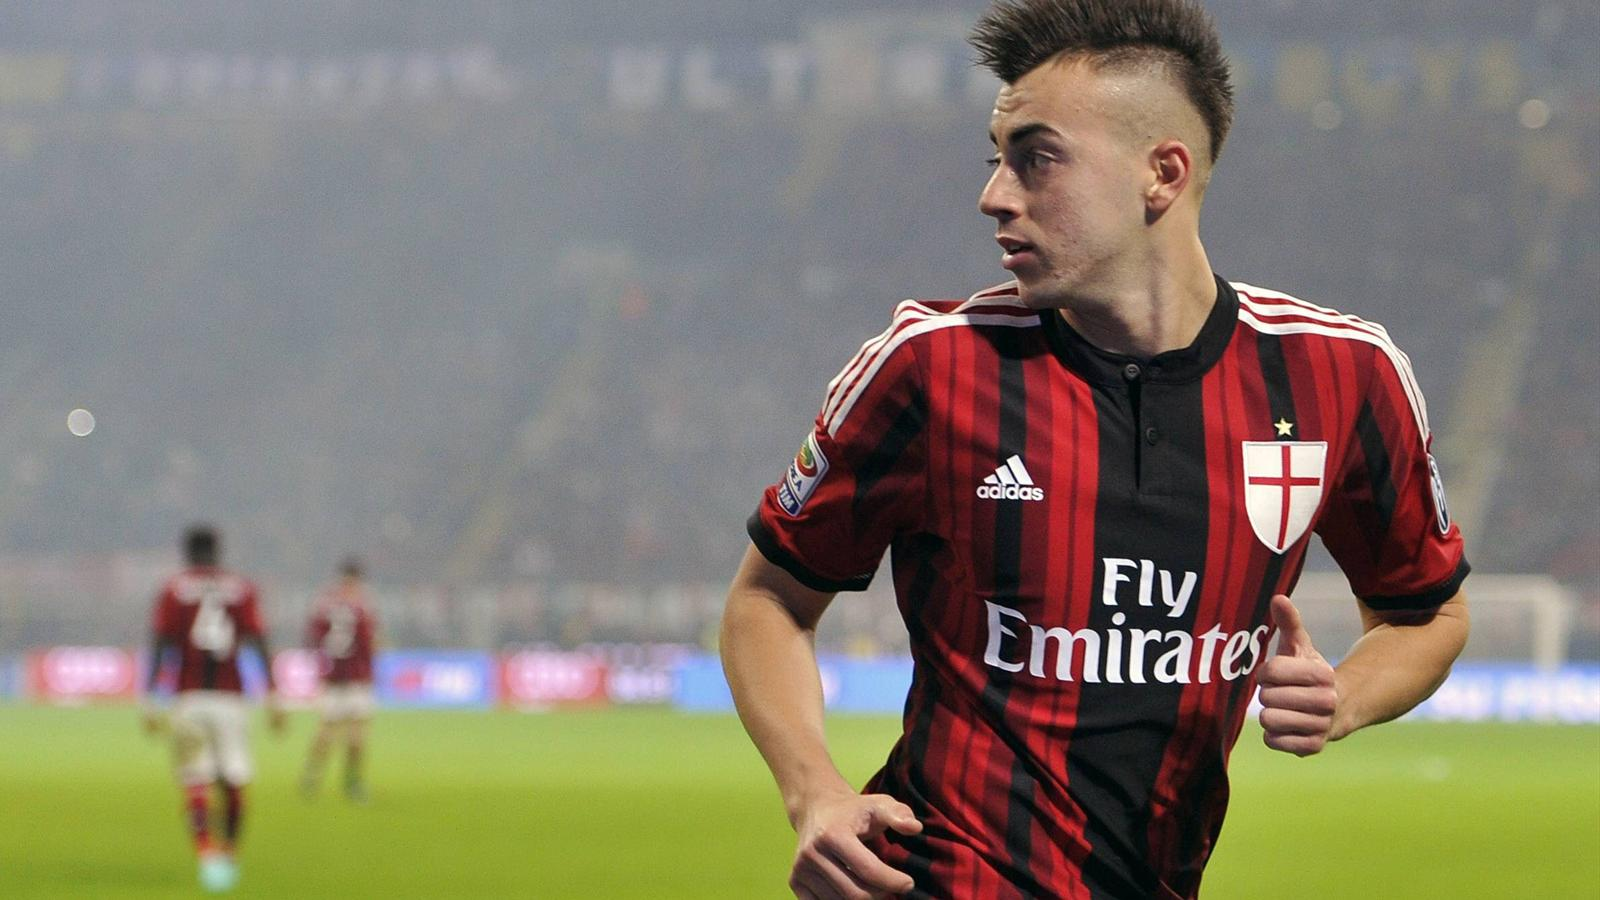 Milan forward Stephan El Shaarawy set to join Monaco Serie A